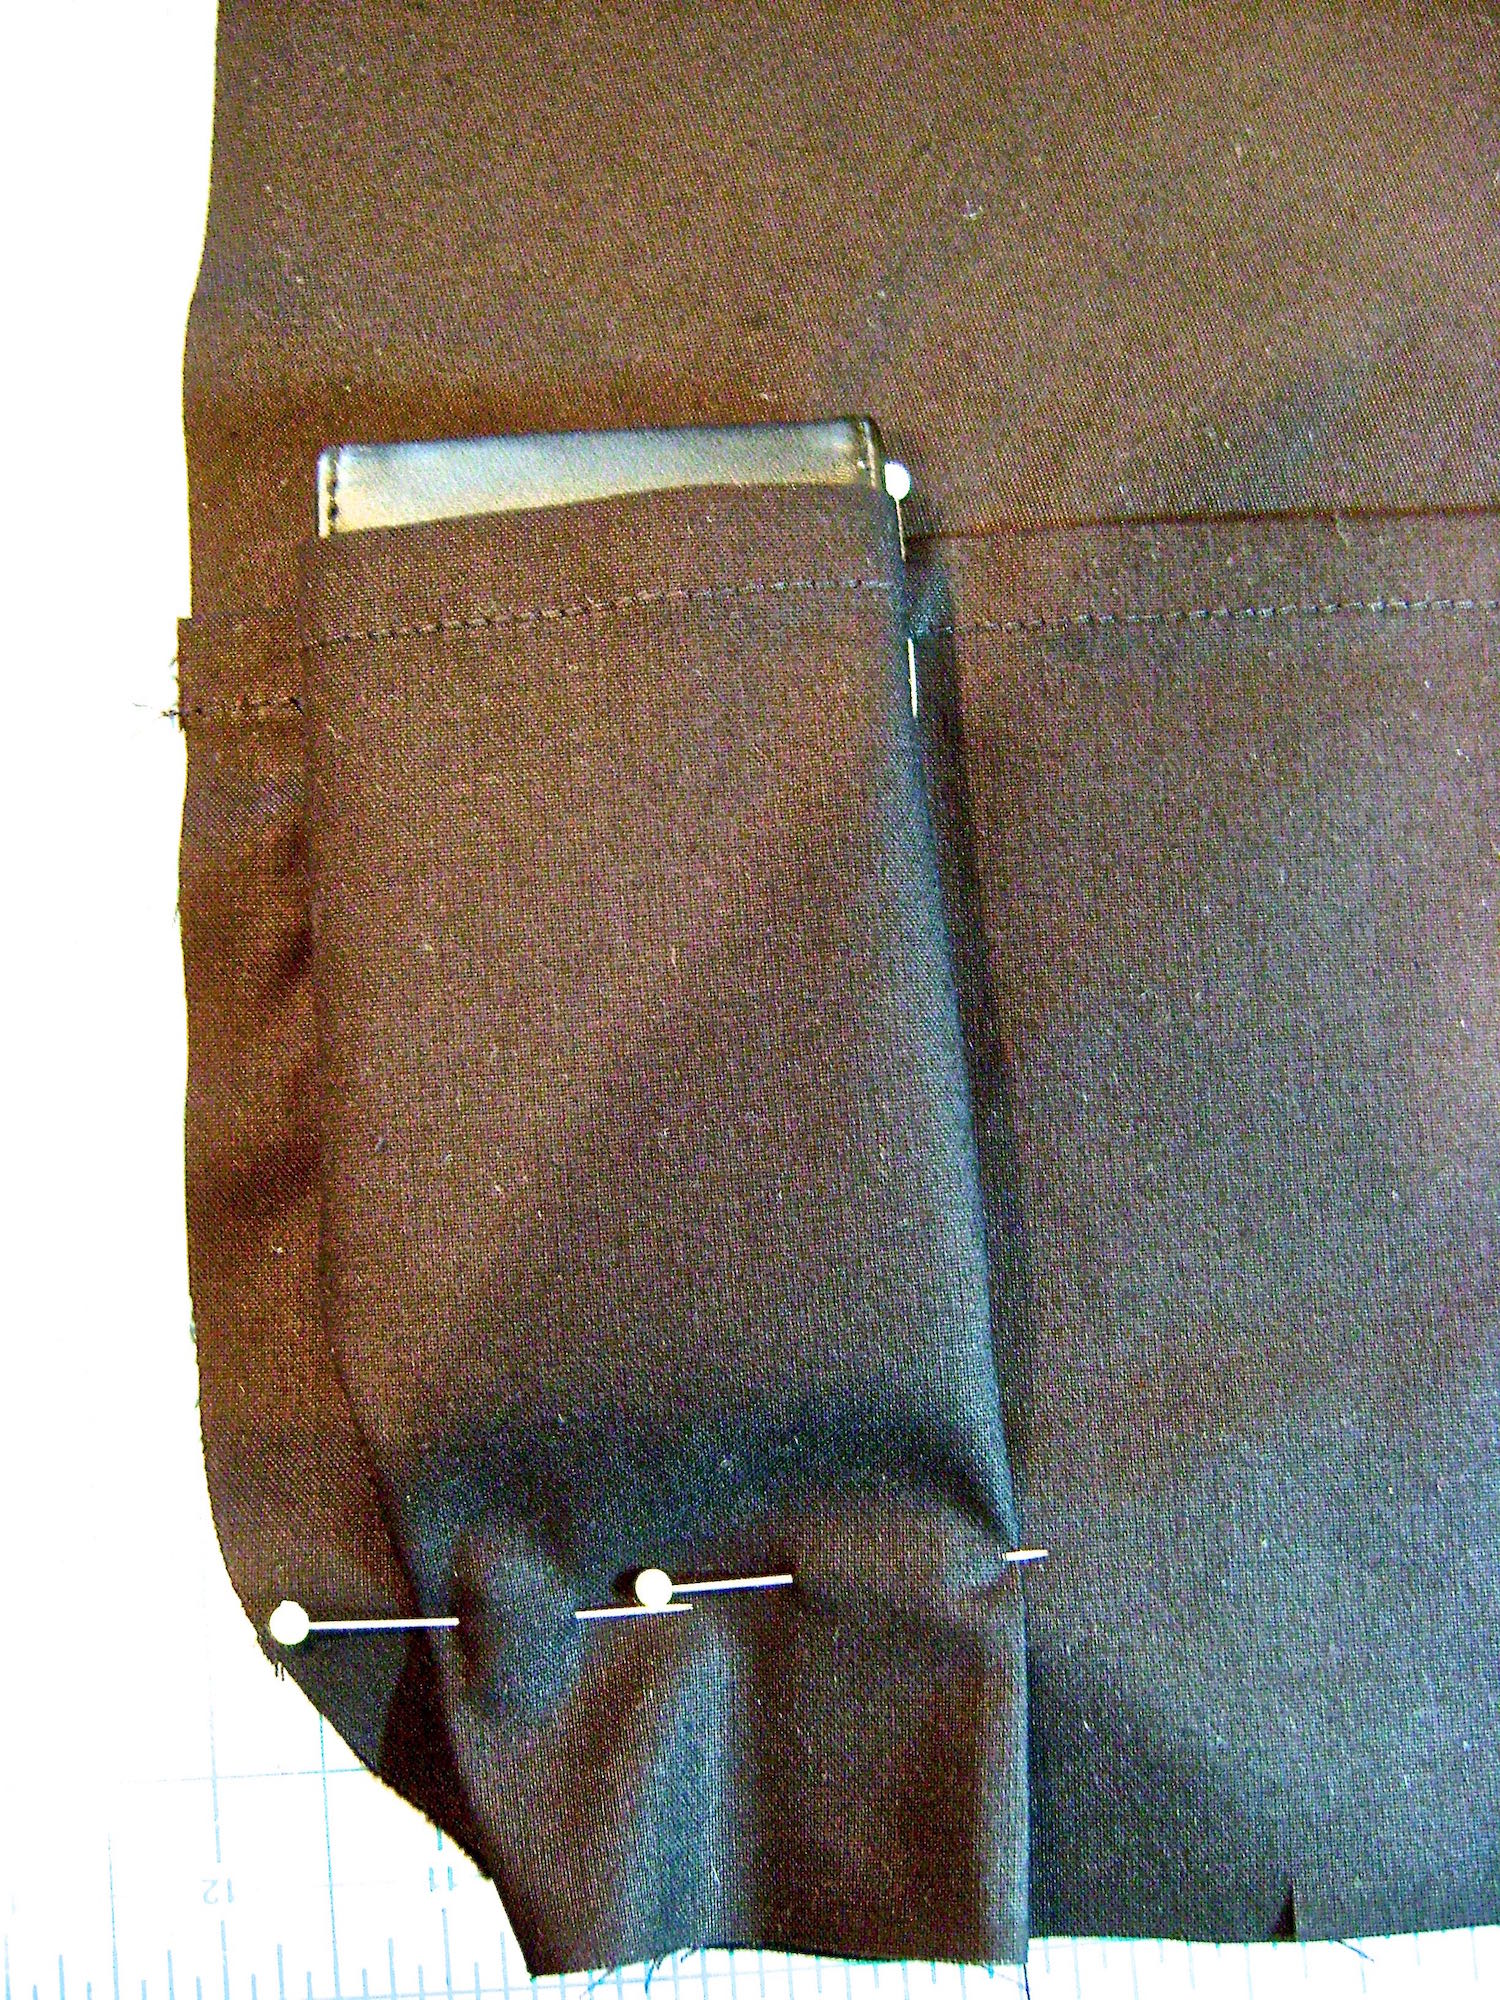 step 5 - Position your first item.  Drape the fabric over it and pin the pocket to the lining on the right side of this space.  Don't make it too snug.